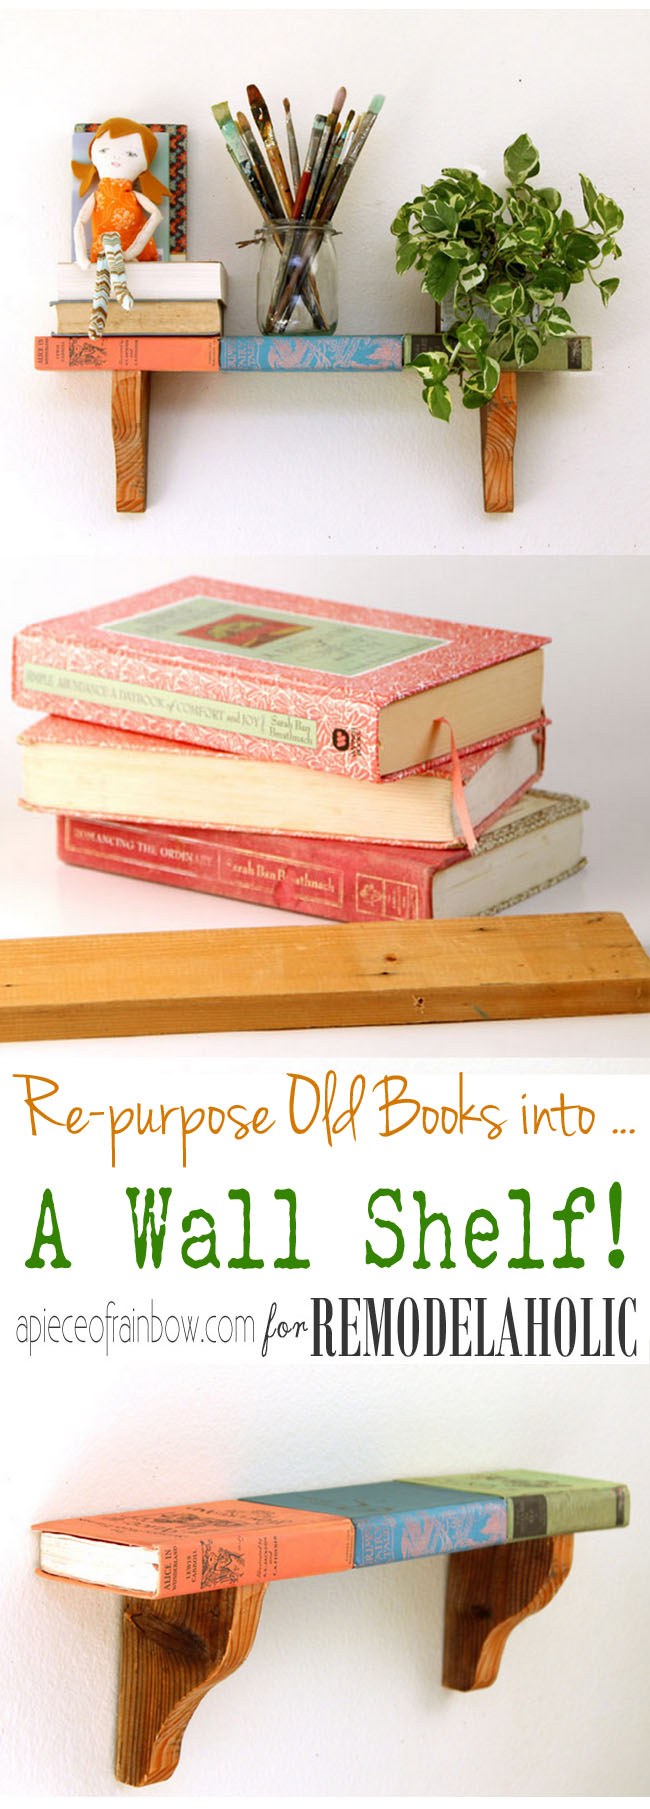 How To Make A Rainbow Book Cover ~ How to repurpose old books into a wall shelf remodelaholic